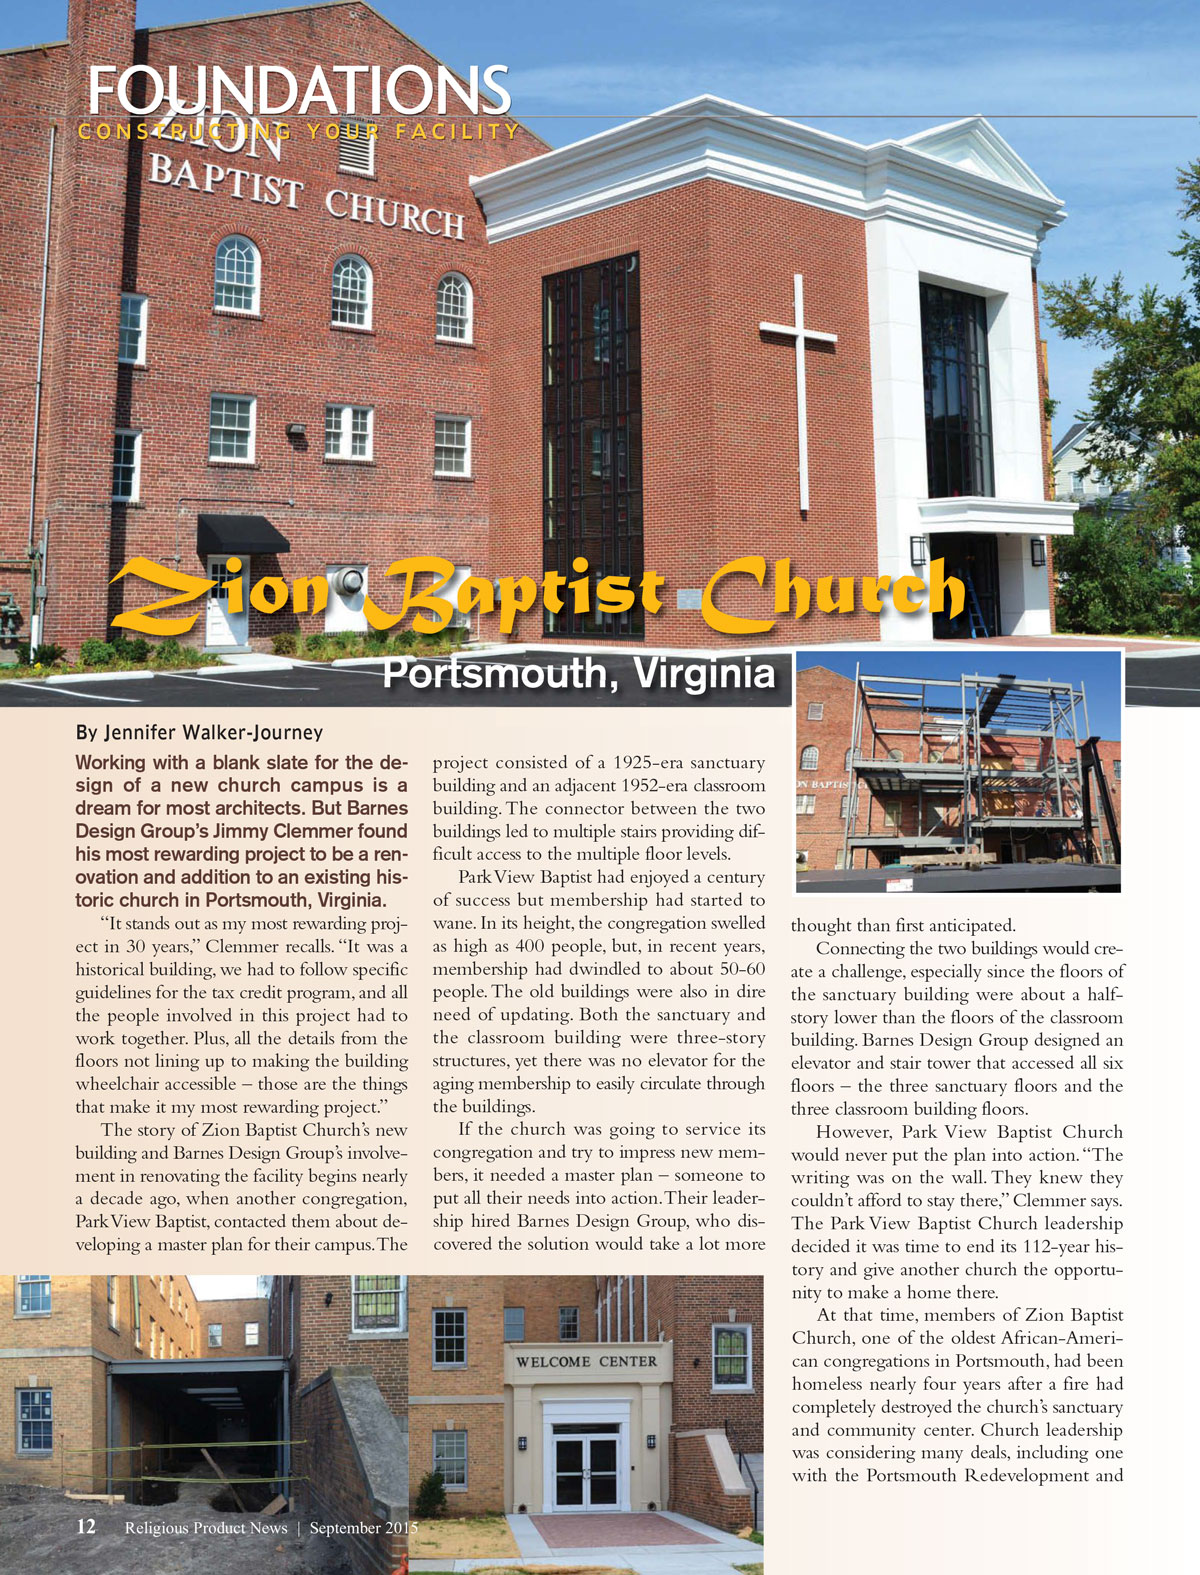 Zion-in-the-news-1